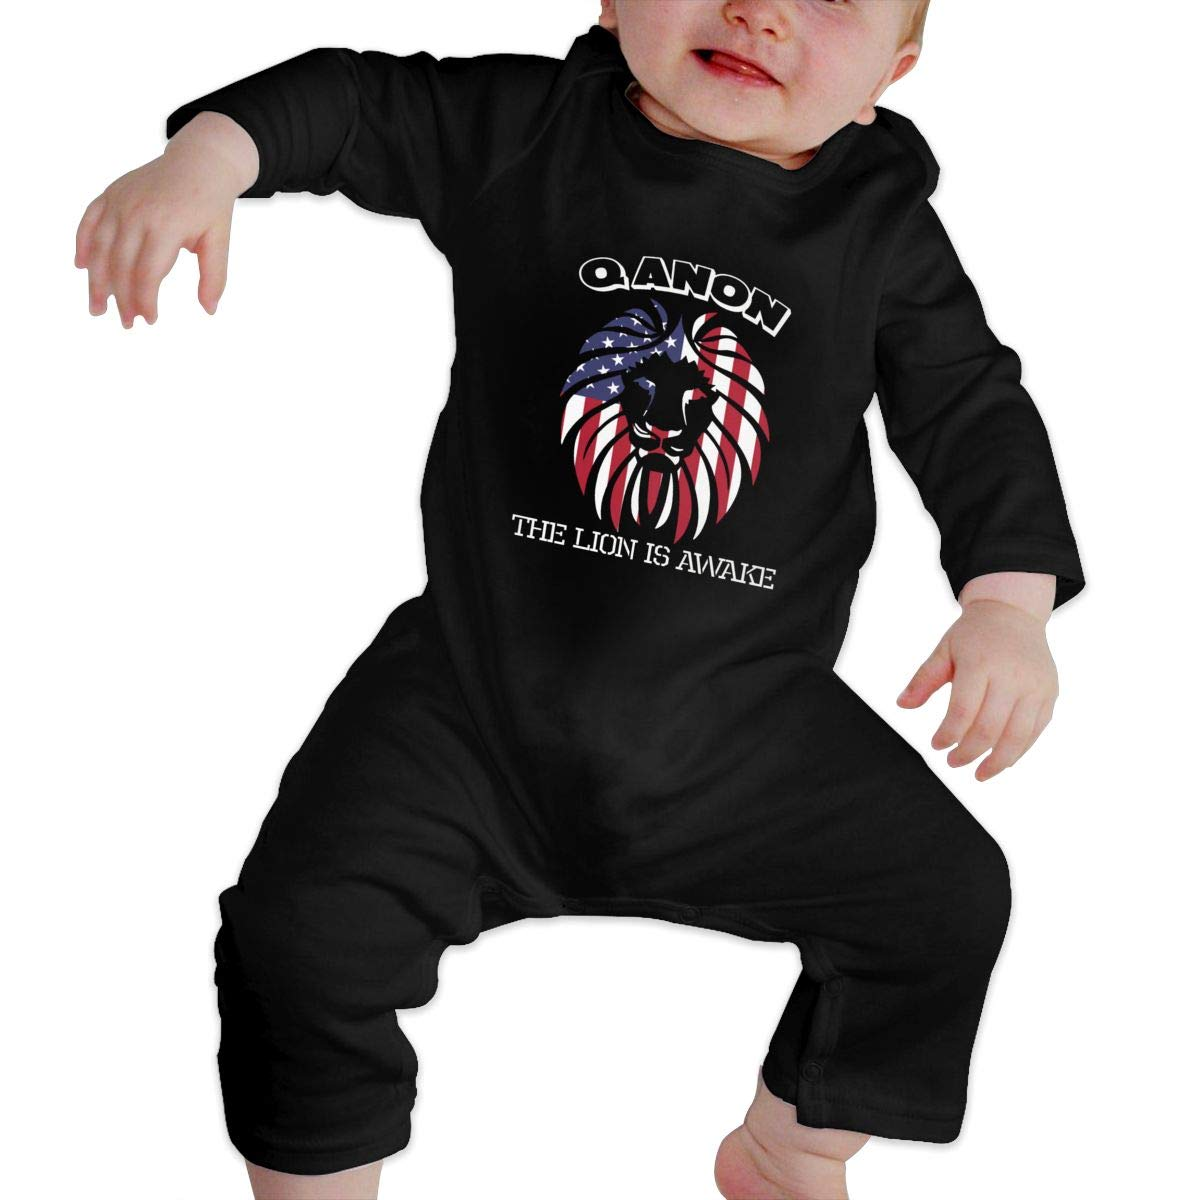 SOFIEYA Qanon-The-Lion-is-Awake Kids Baby Unisex Cotton Cute Long Sleeve Hooded Romper Jumpsuit Baby Crawler Clothes Black